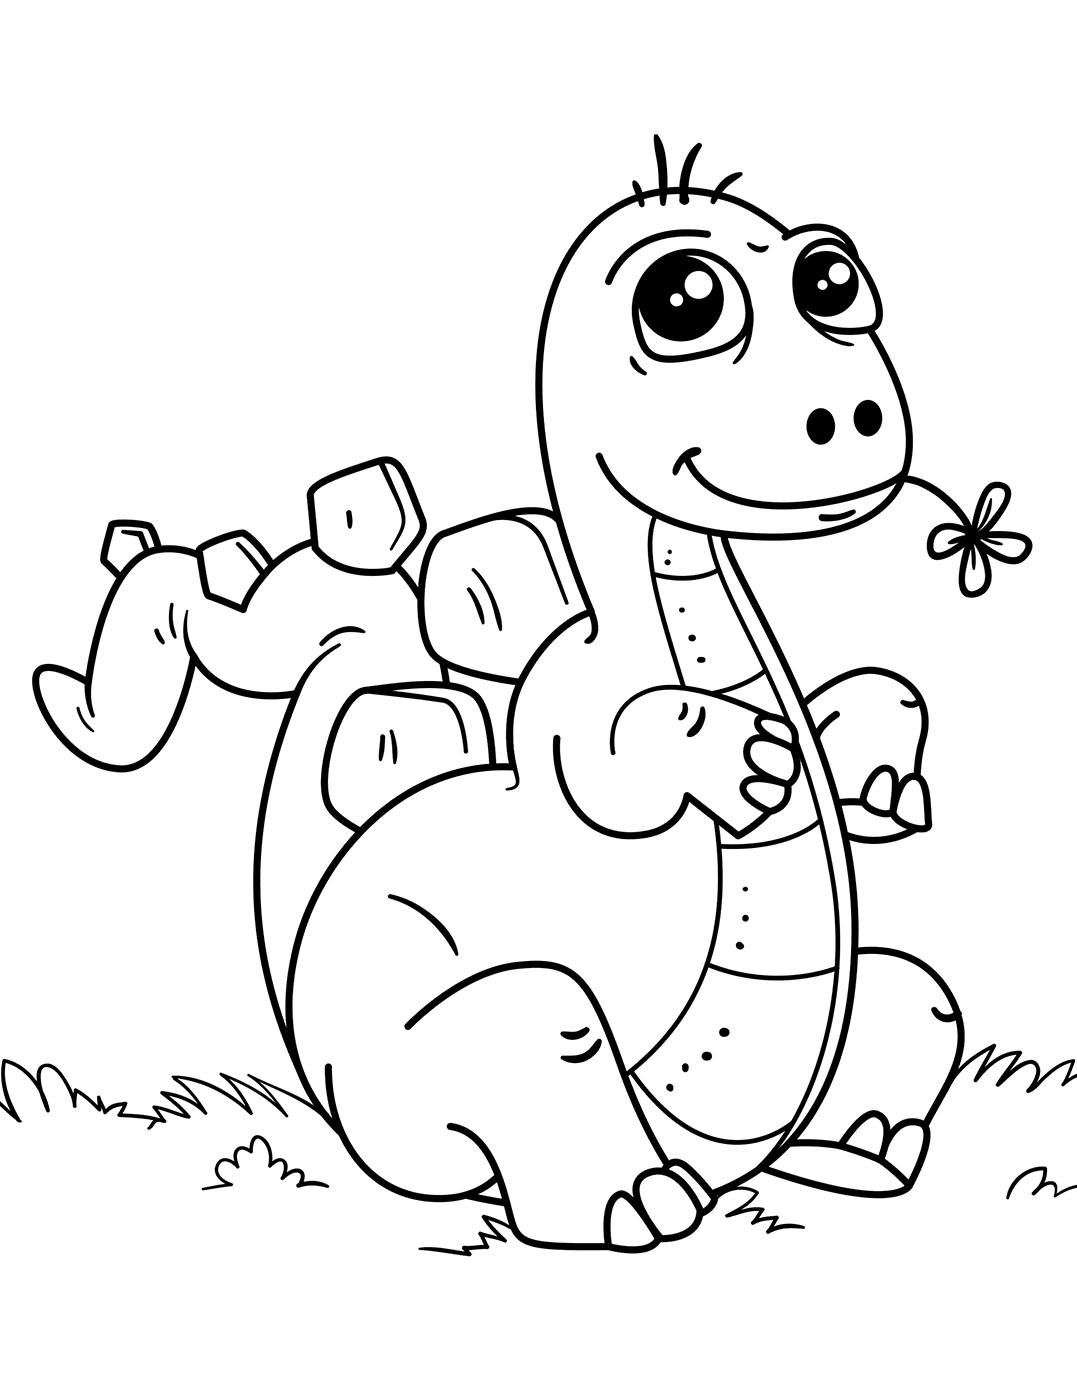 baby dinosaur coloring pages coloring page dinosaur babies hatch baby coloring dinosaur pages